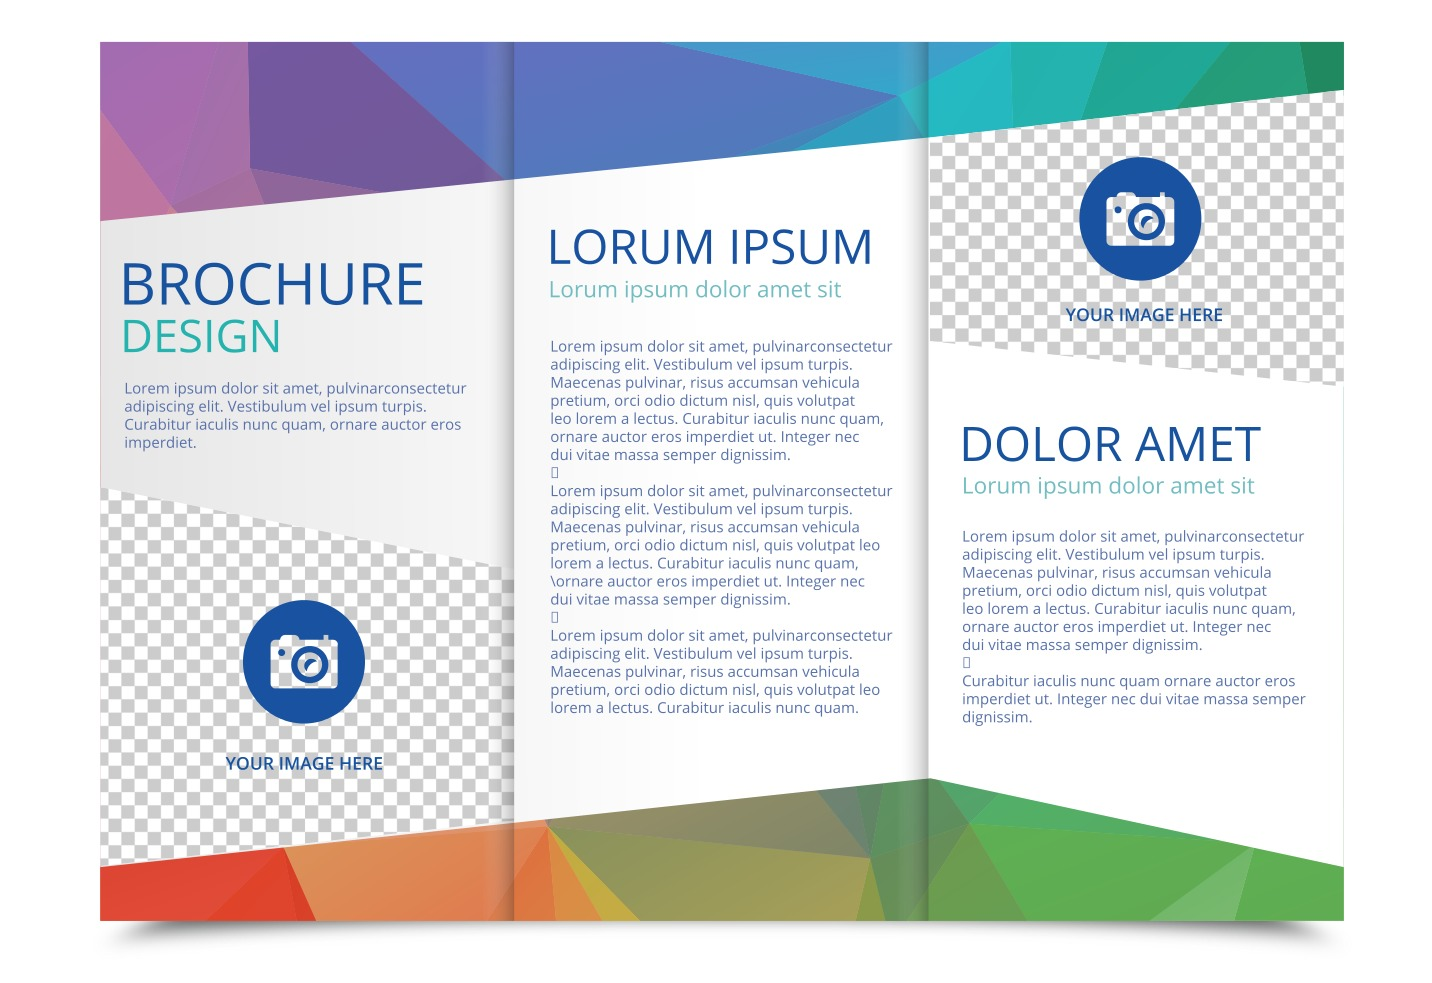 Free tri fold brochure vector template download free for Brochure template download free